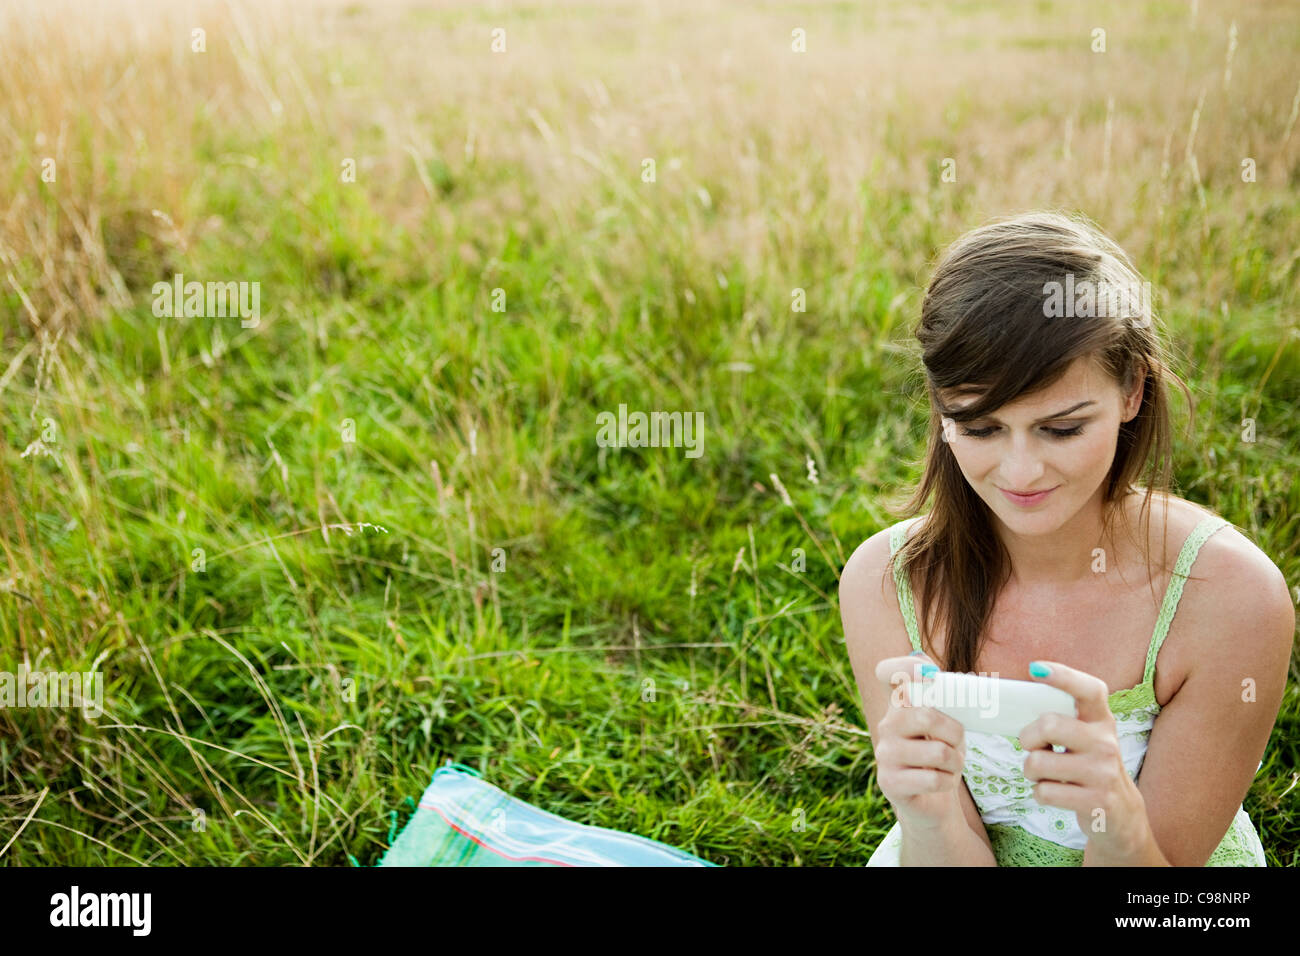 Young woman looking hand held device field - Stock Image